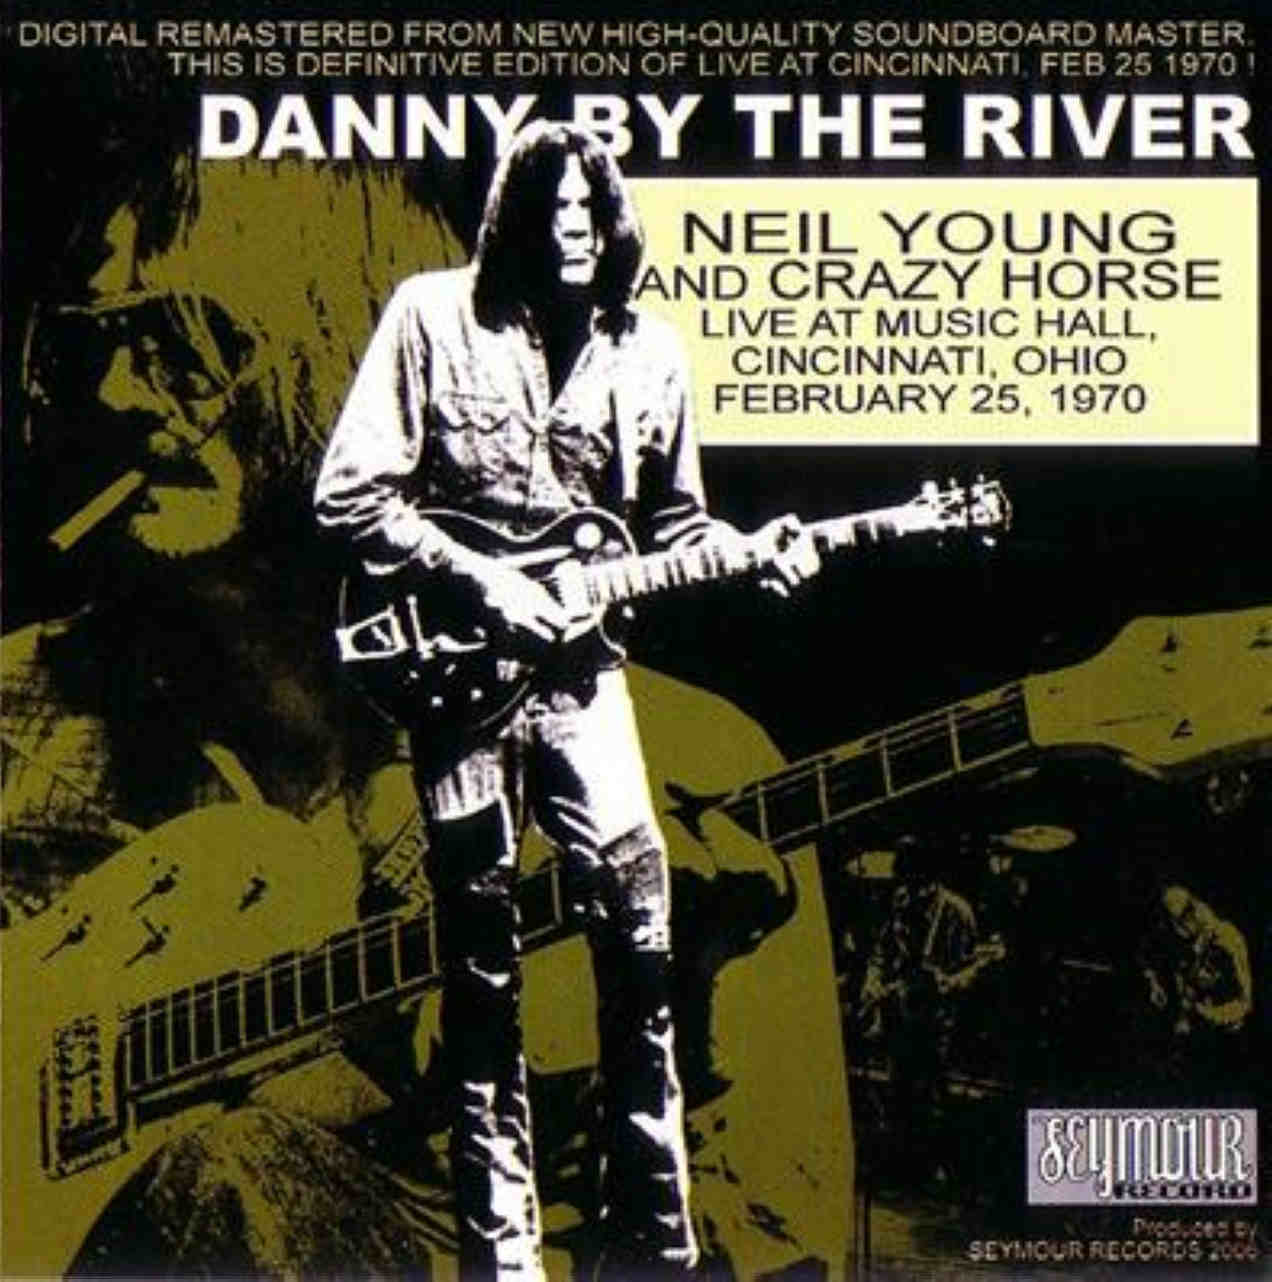 Neil Young Boots Neil Young 1970.02.25 Danny by